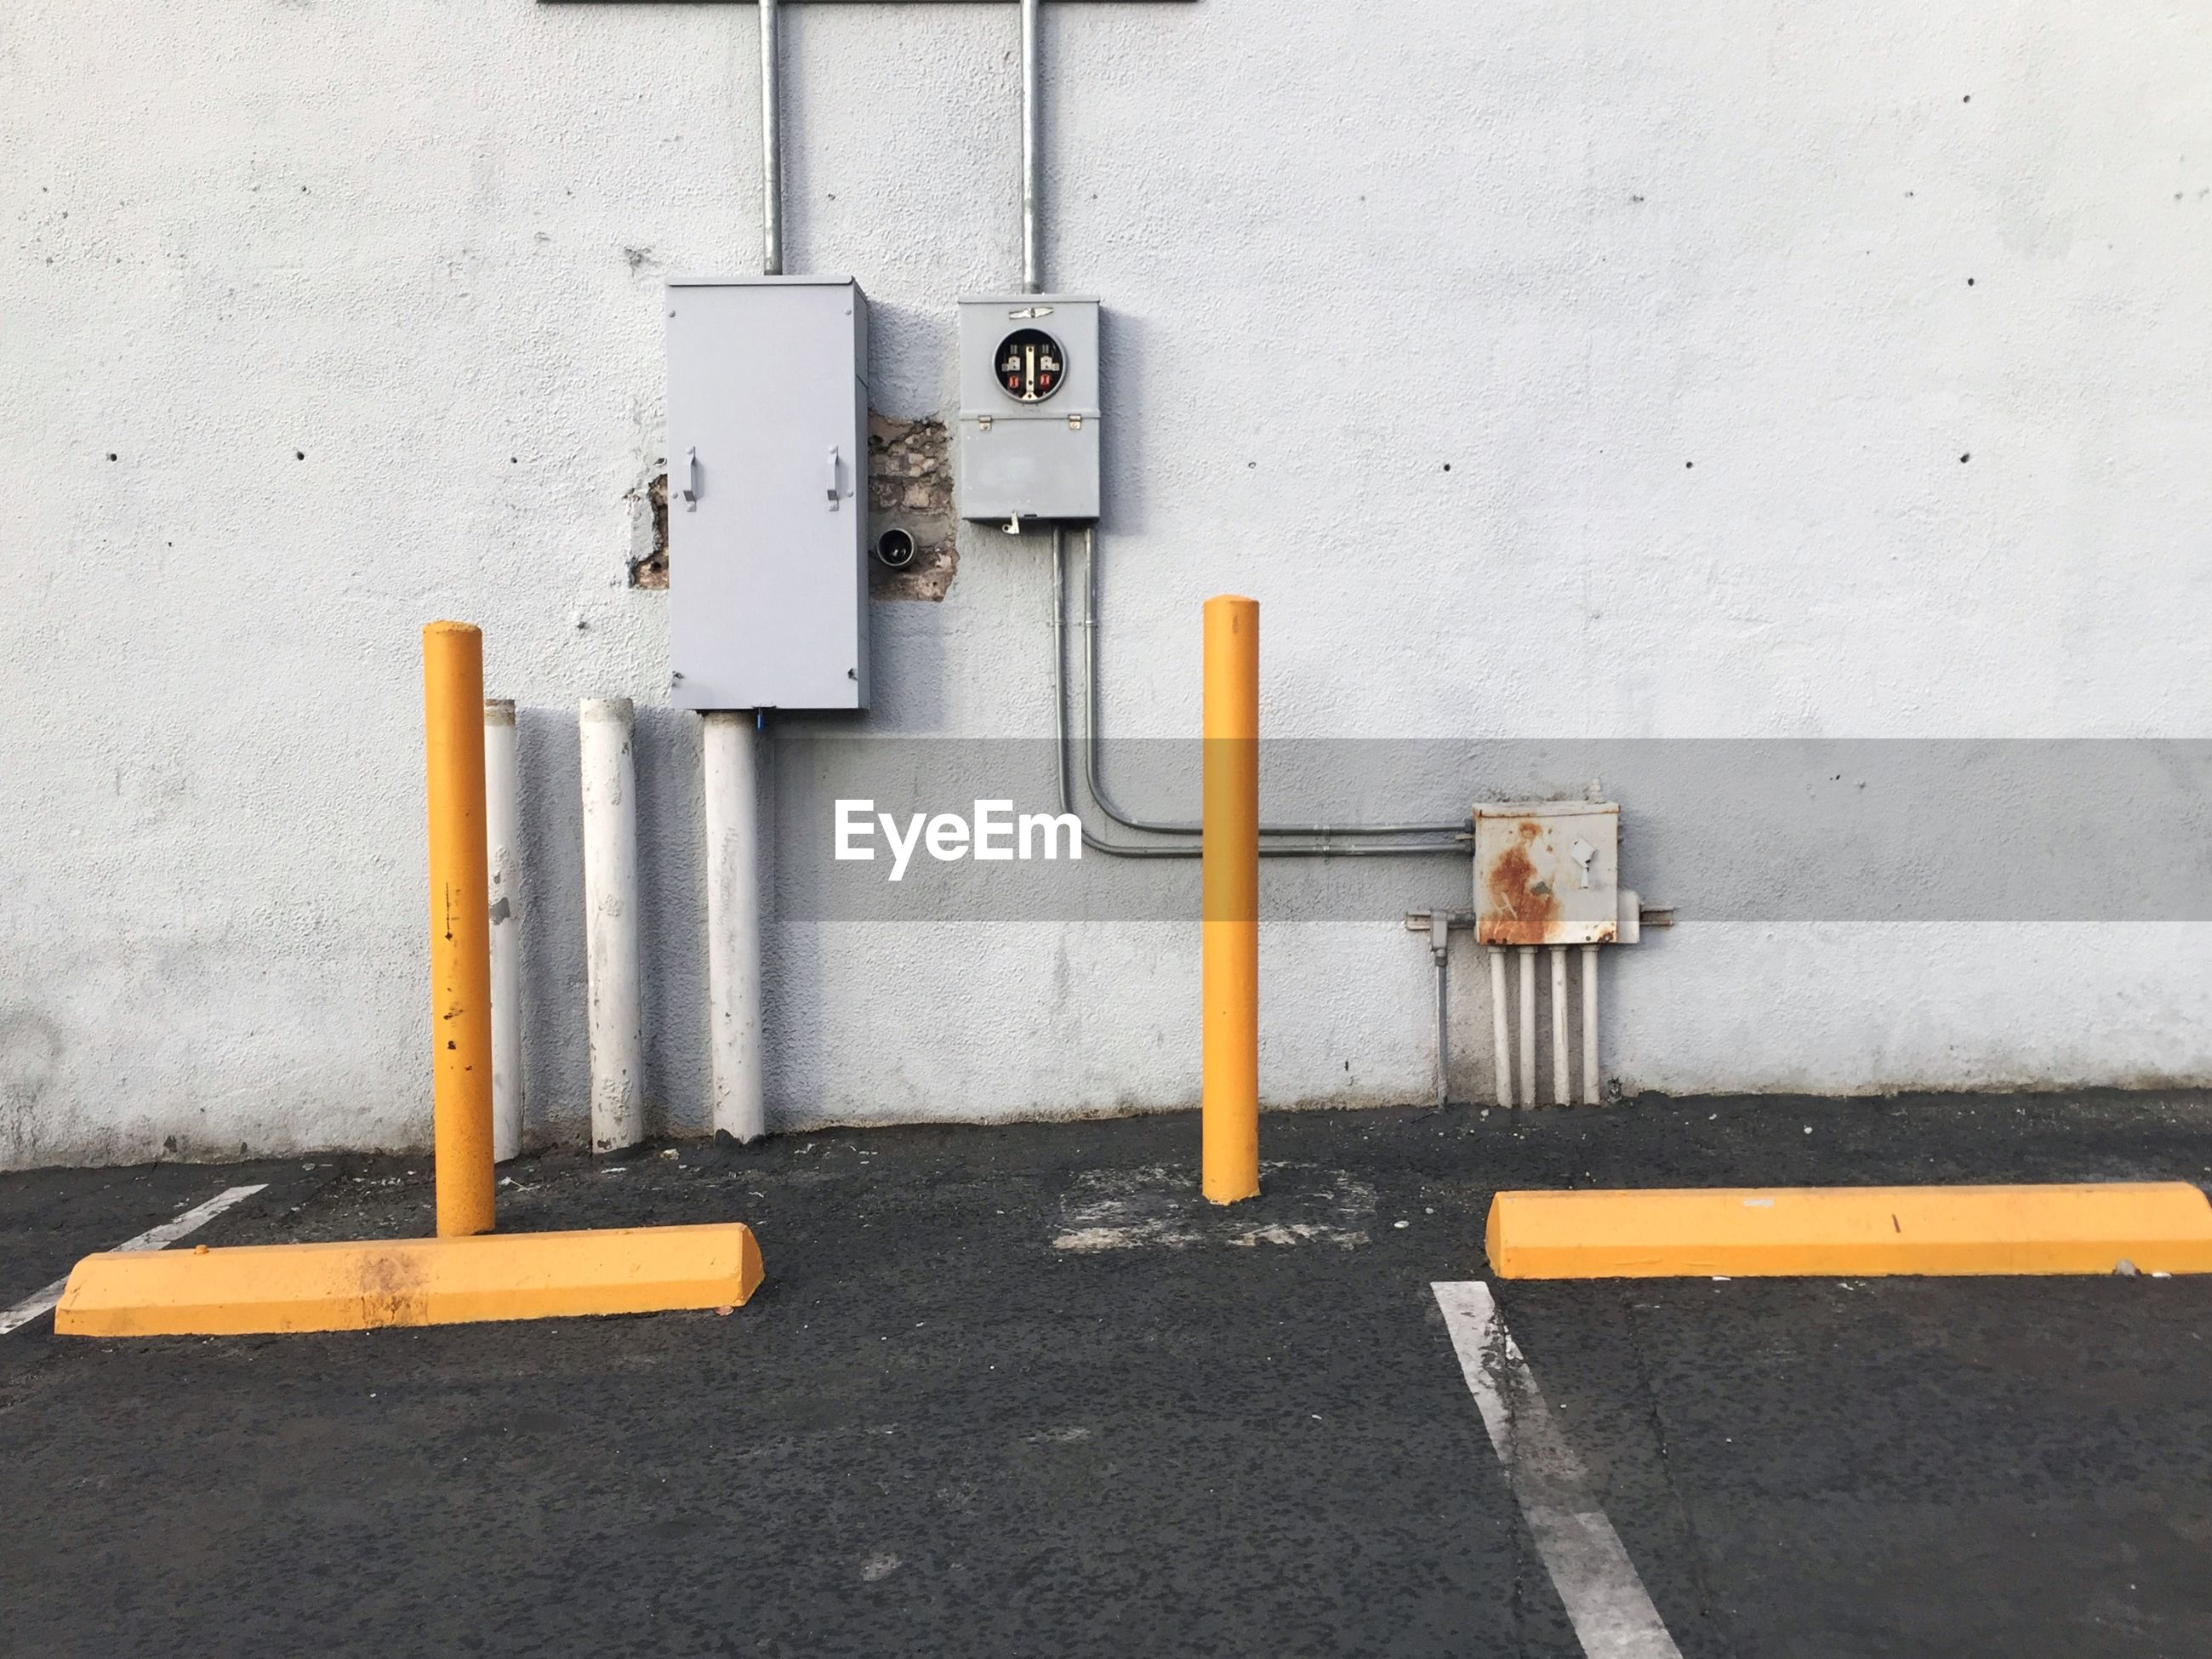 Poles against wall at parking lot